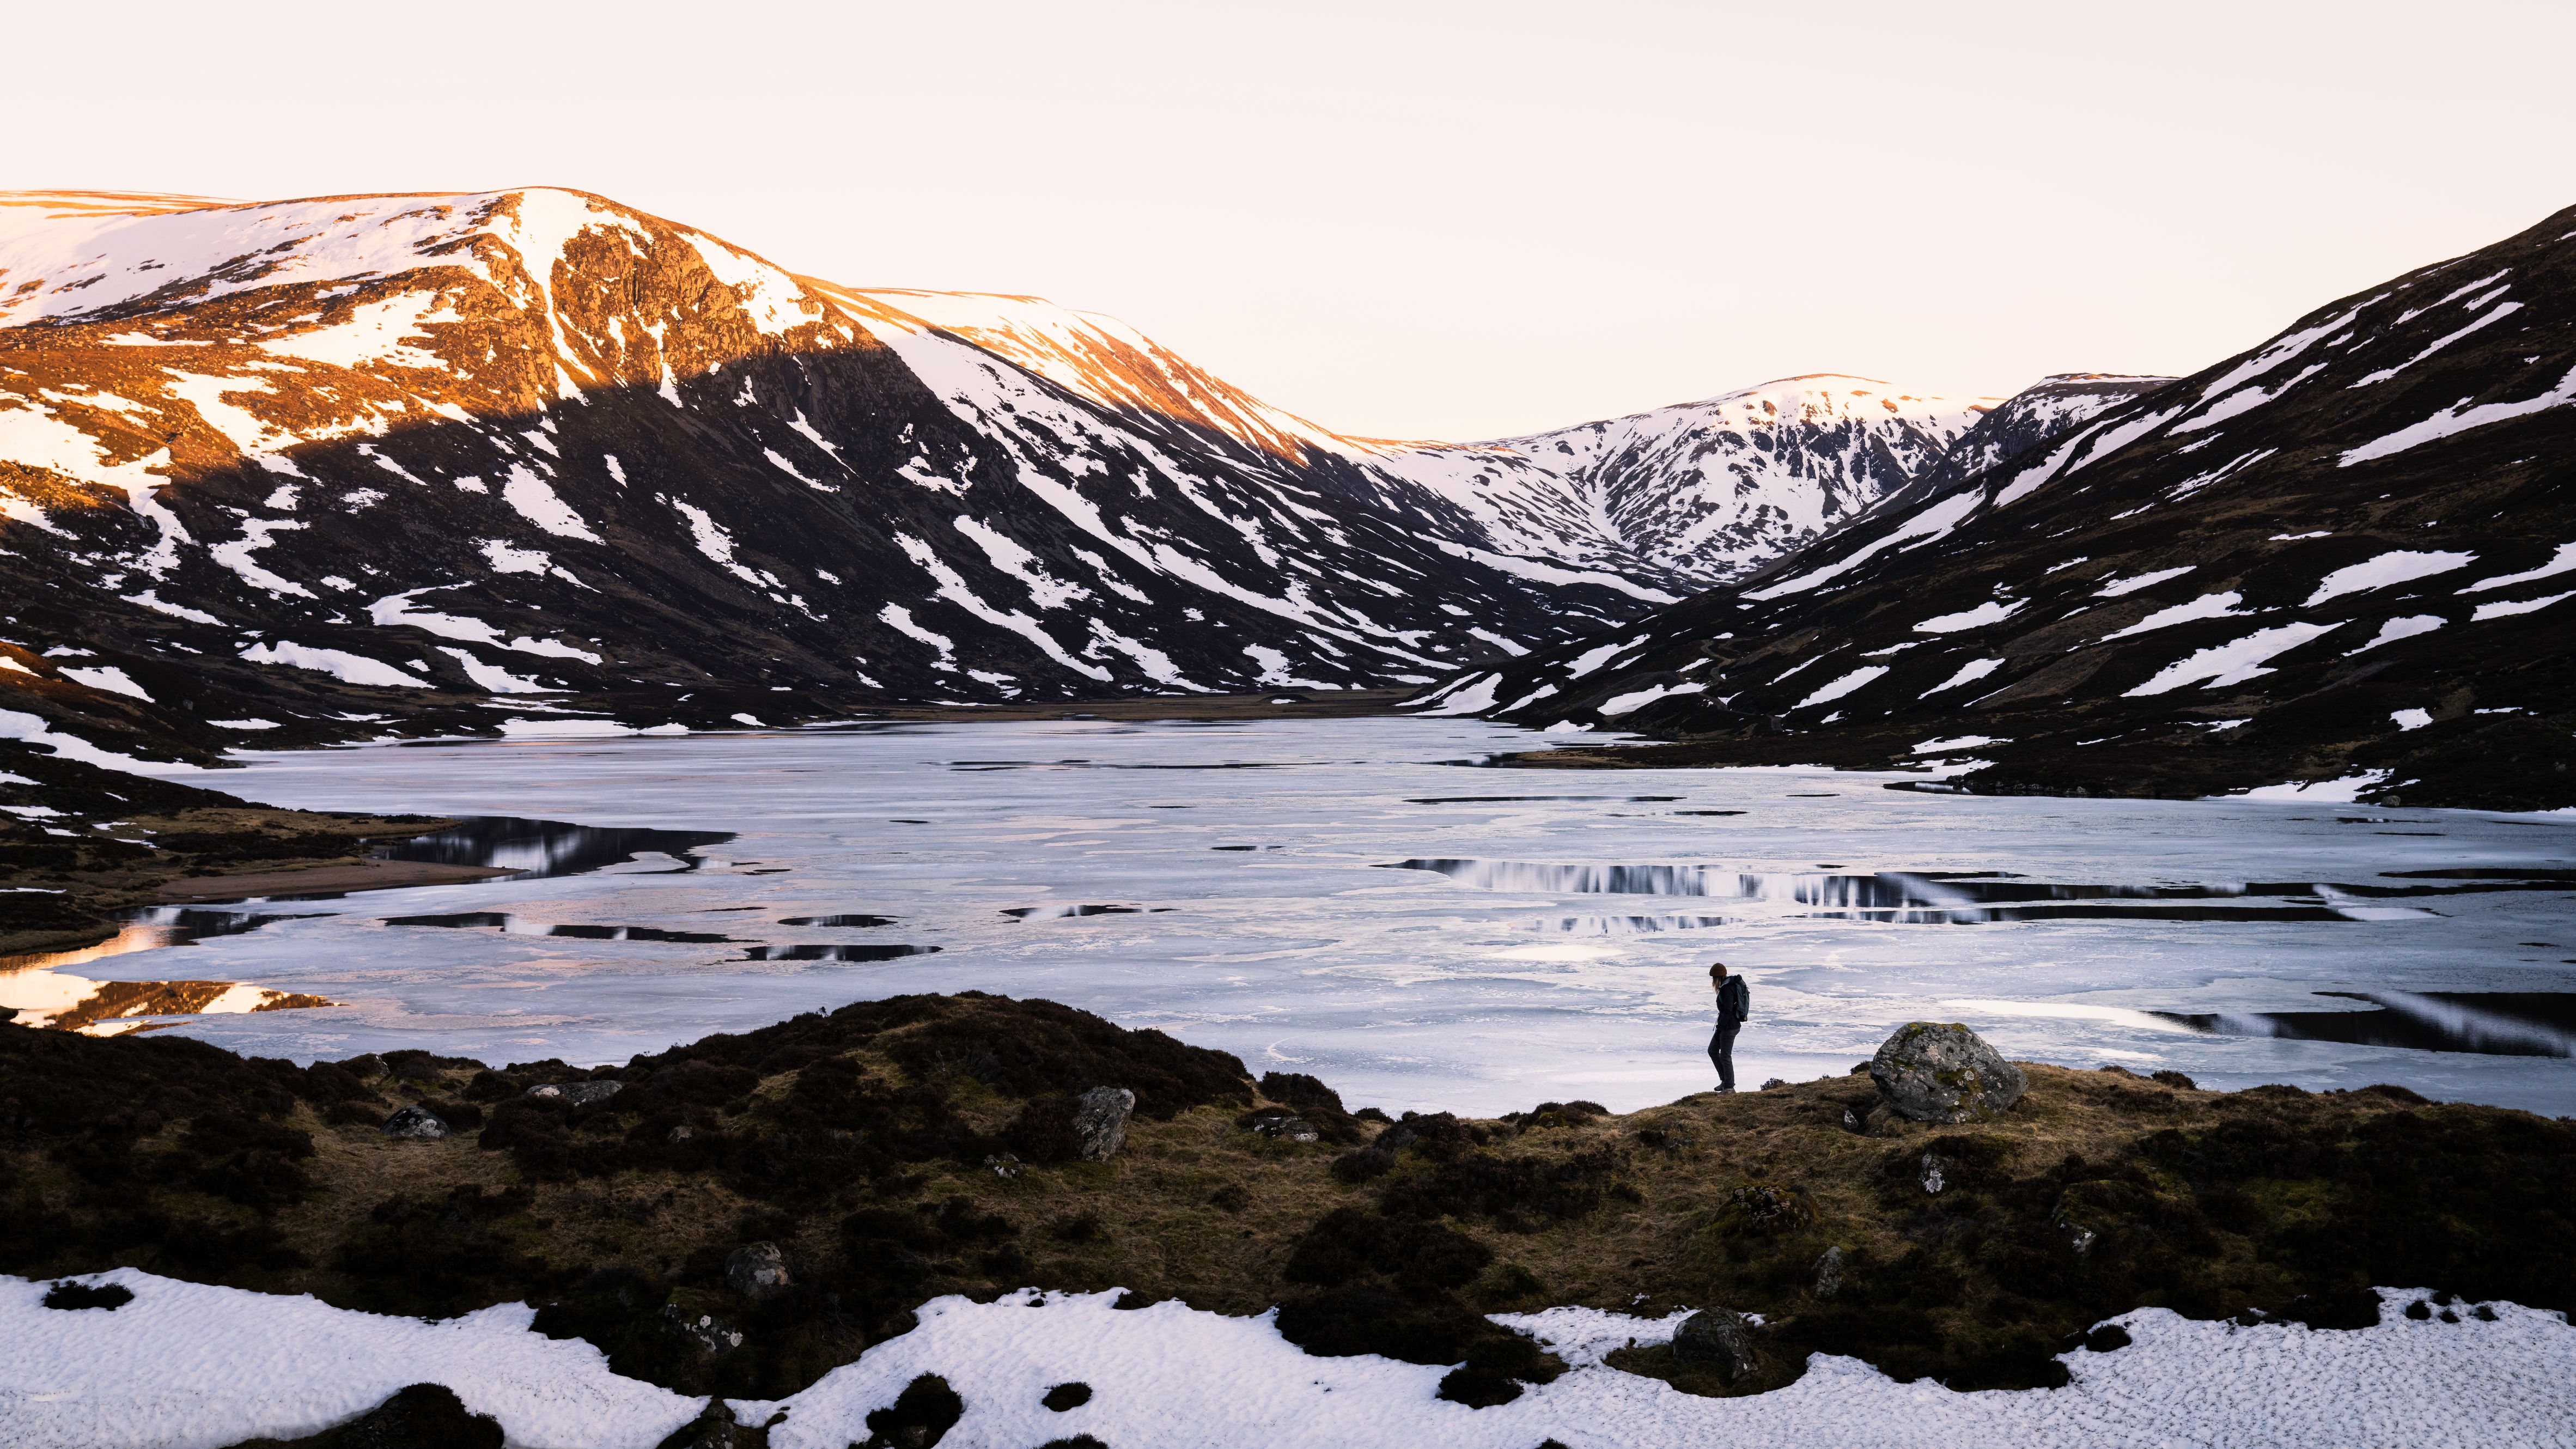 Figure on top of rocks overlooking lake and snowy mountains.